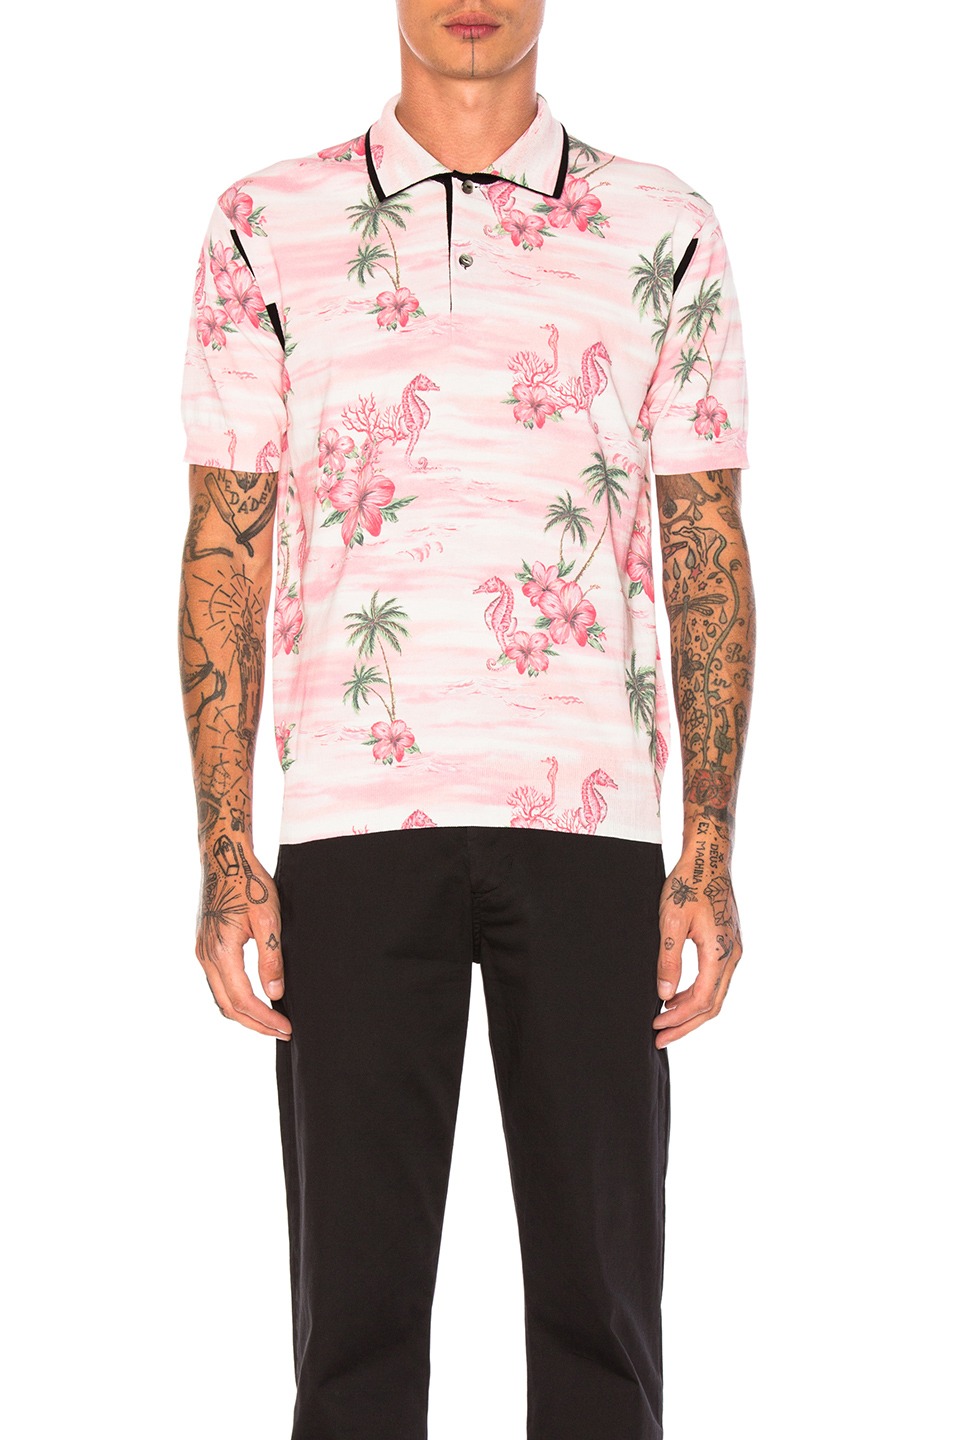 Junya Watanabe Thin Cotton & Wool Jersey Aloha Pattern Print Polo in Pink,Floral,Animal print